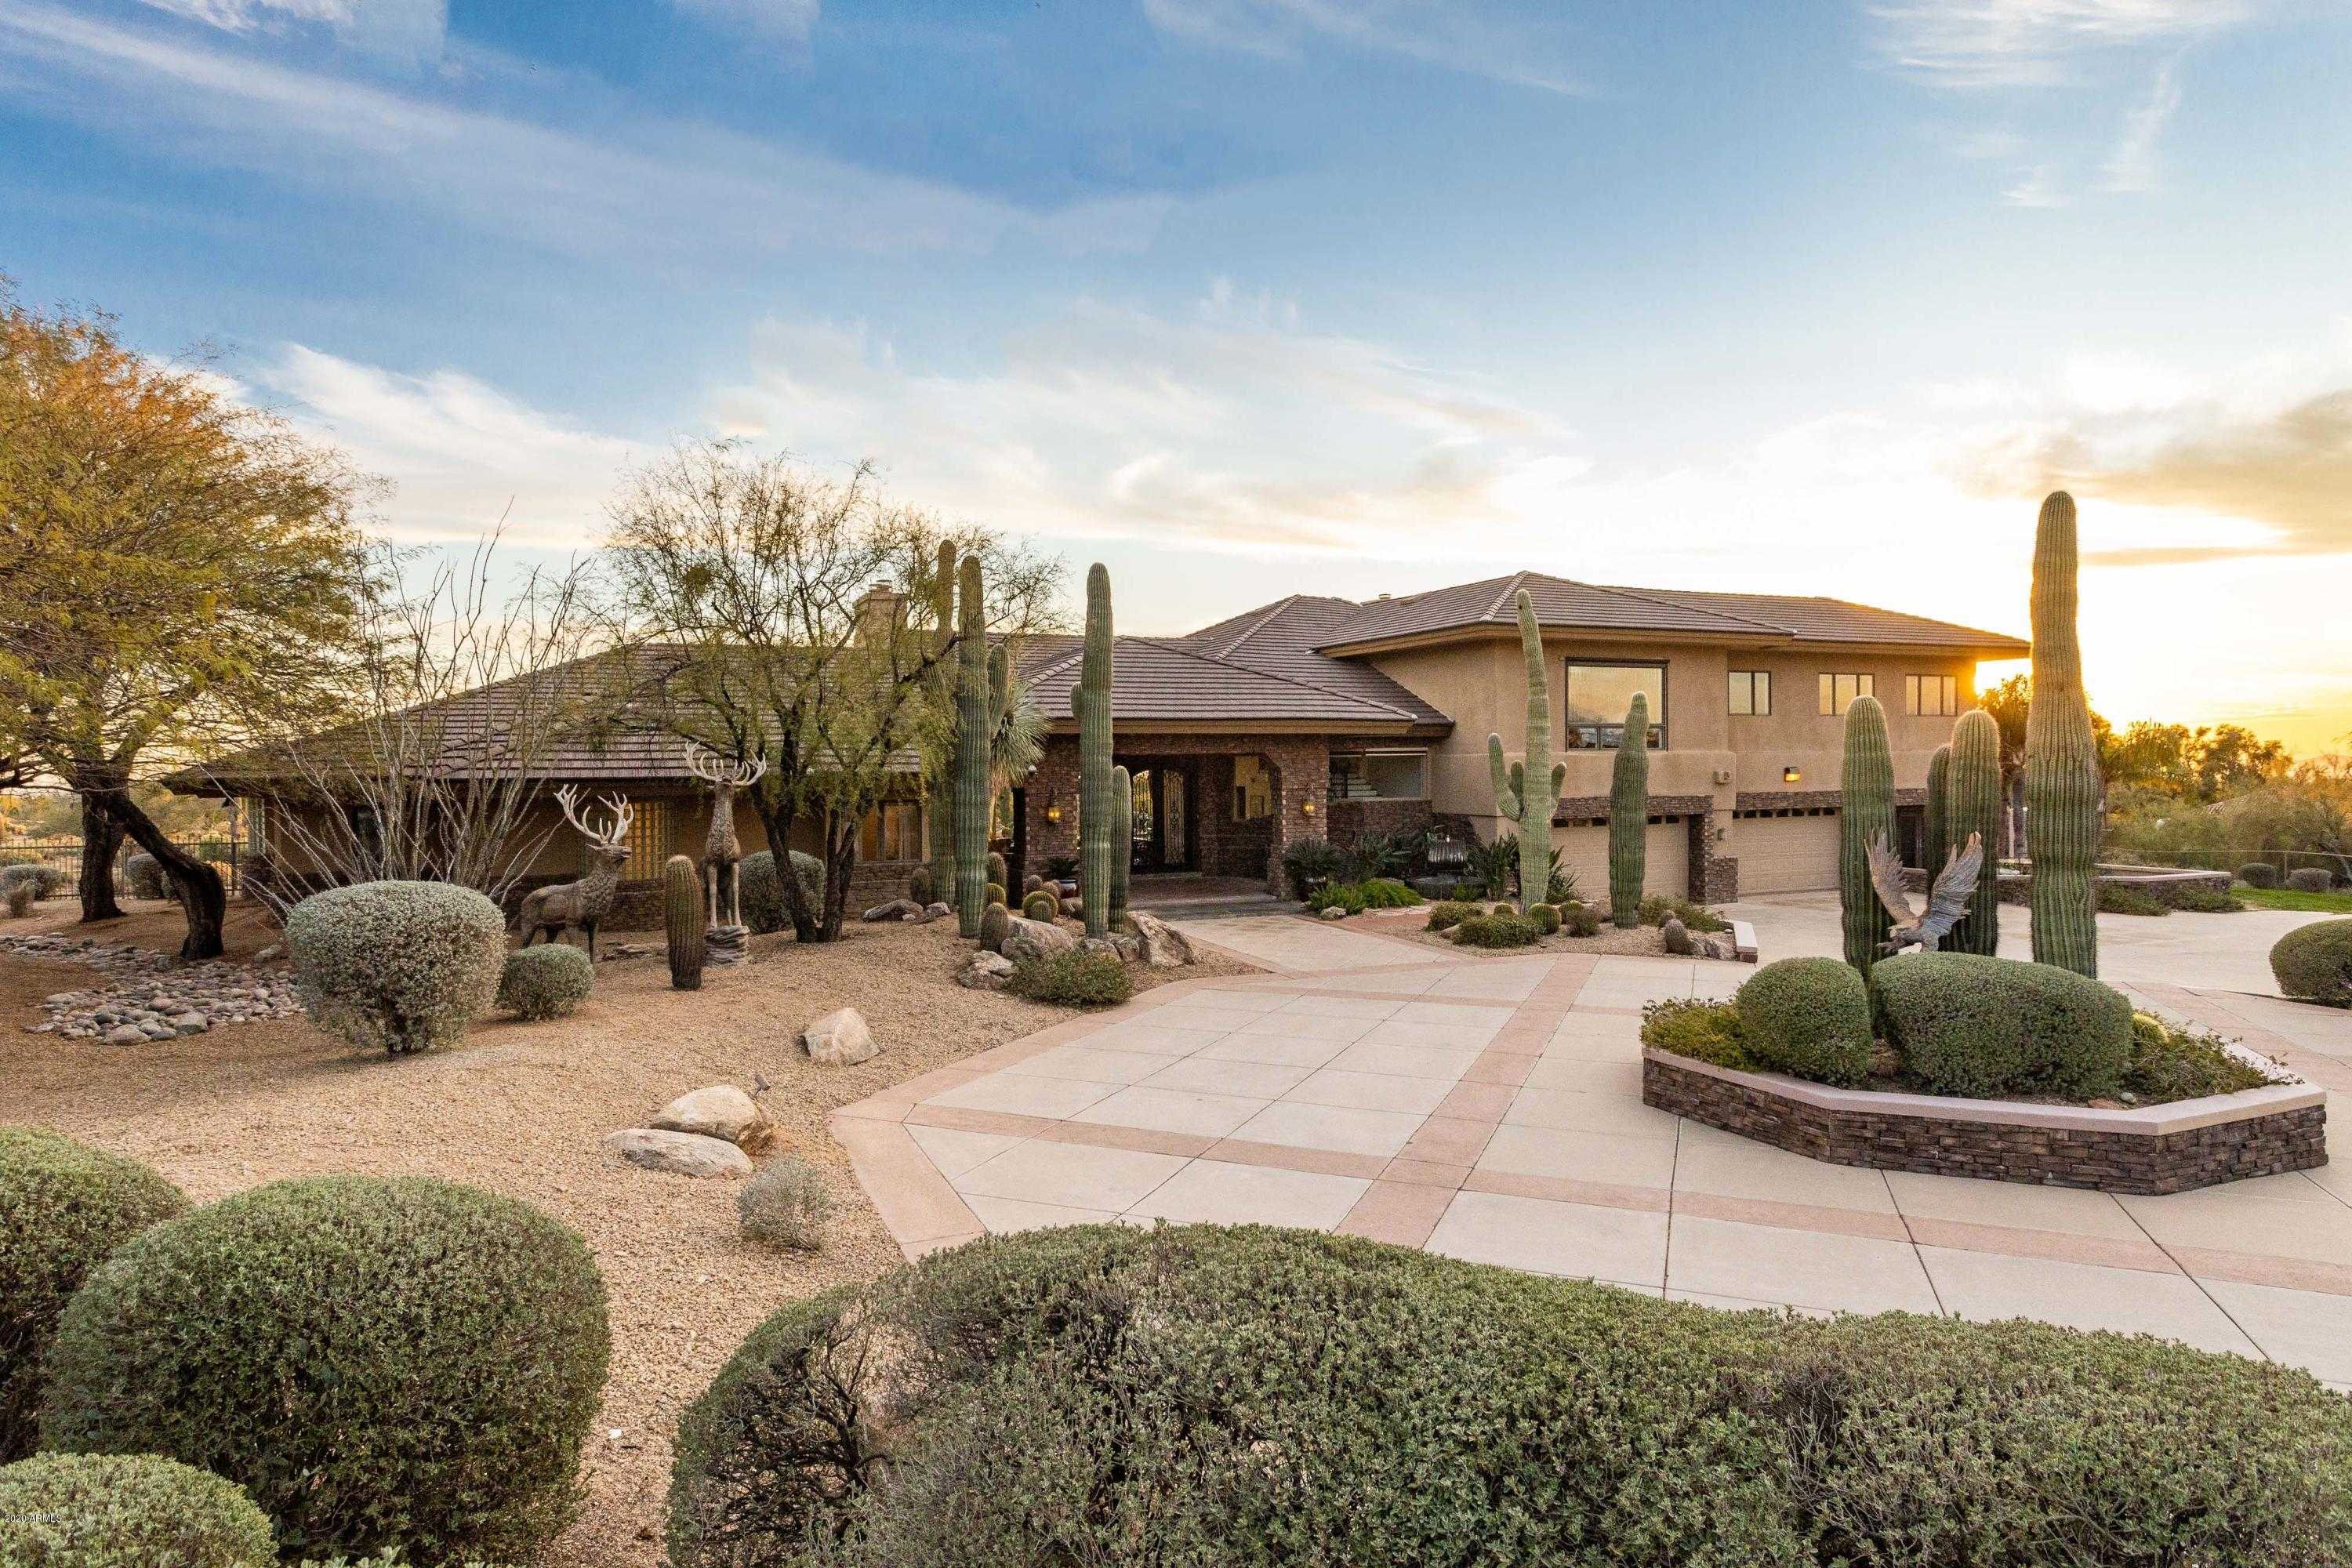 $3,500,000 - 5Br/5Ba - Home for Sale in None, Scottsdale